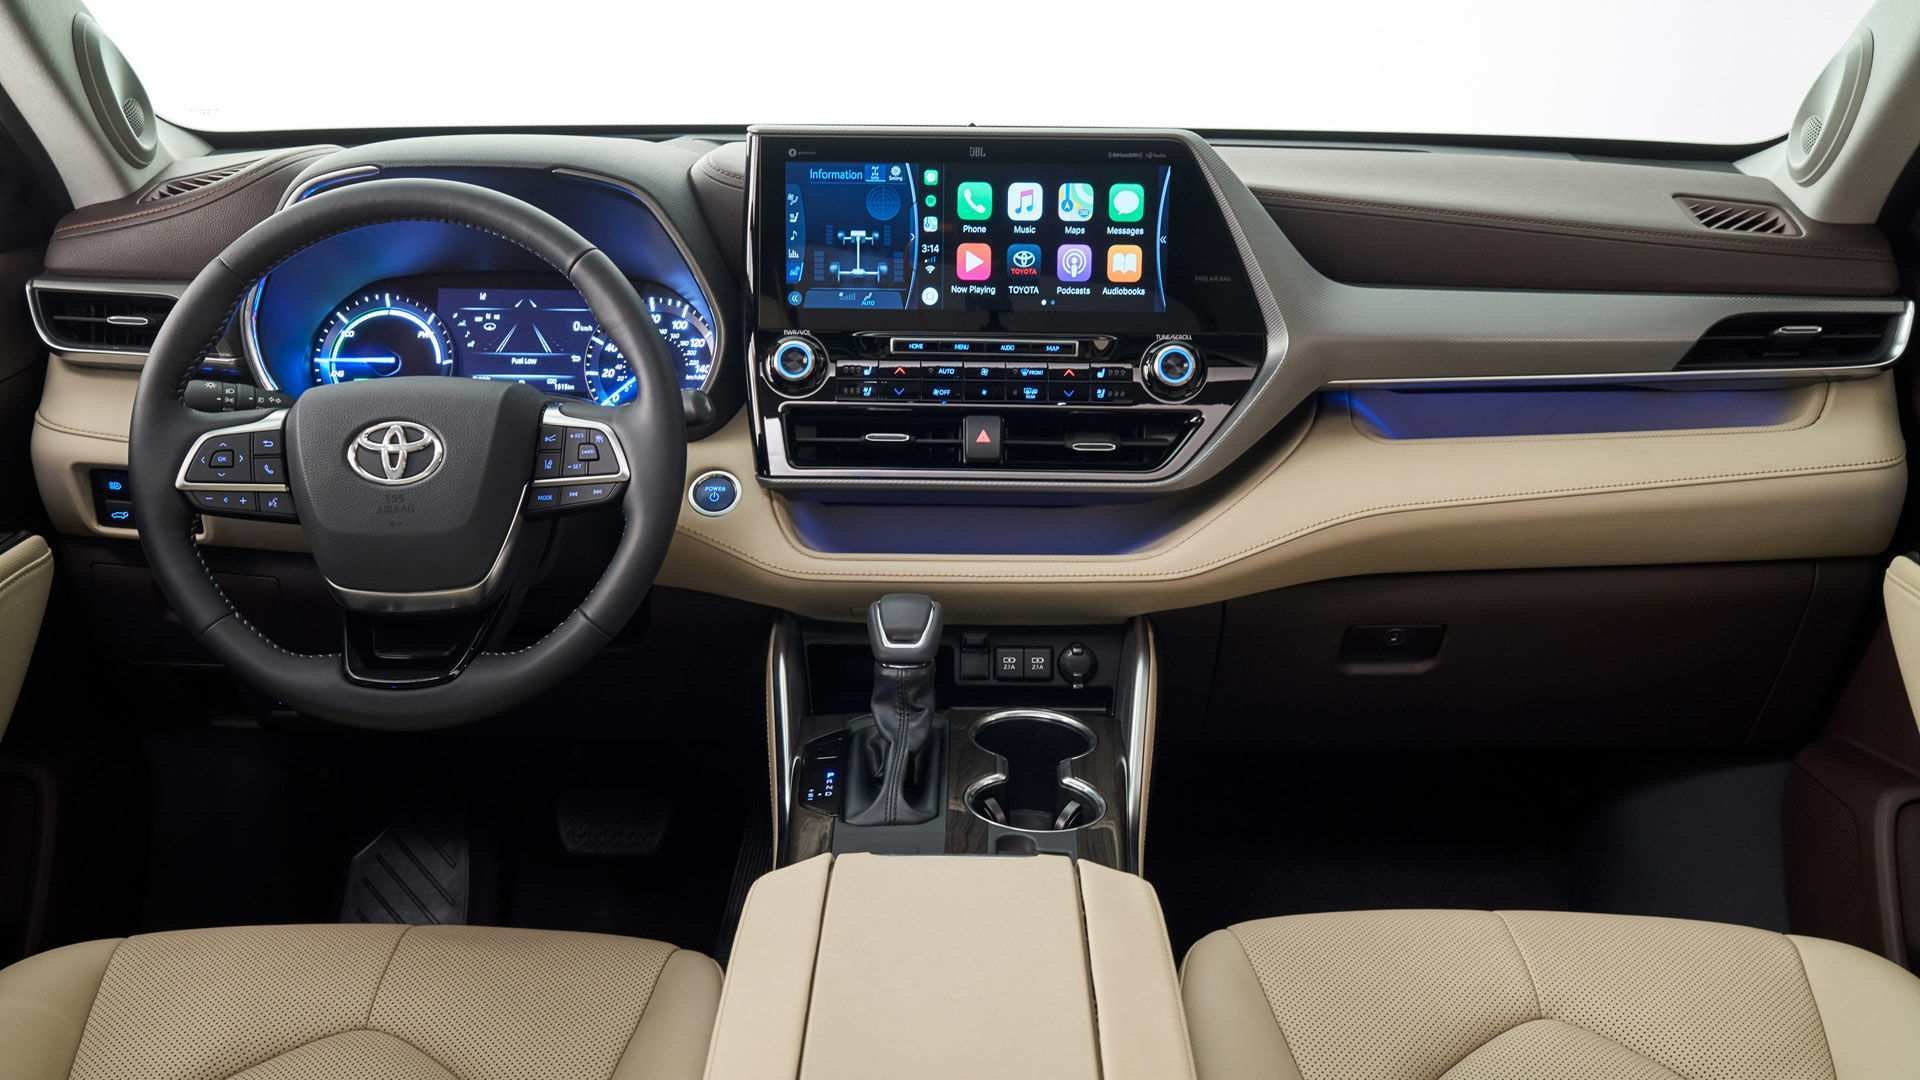 18 A Toyota Kluger 2020 Interior Pictures